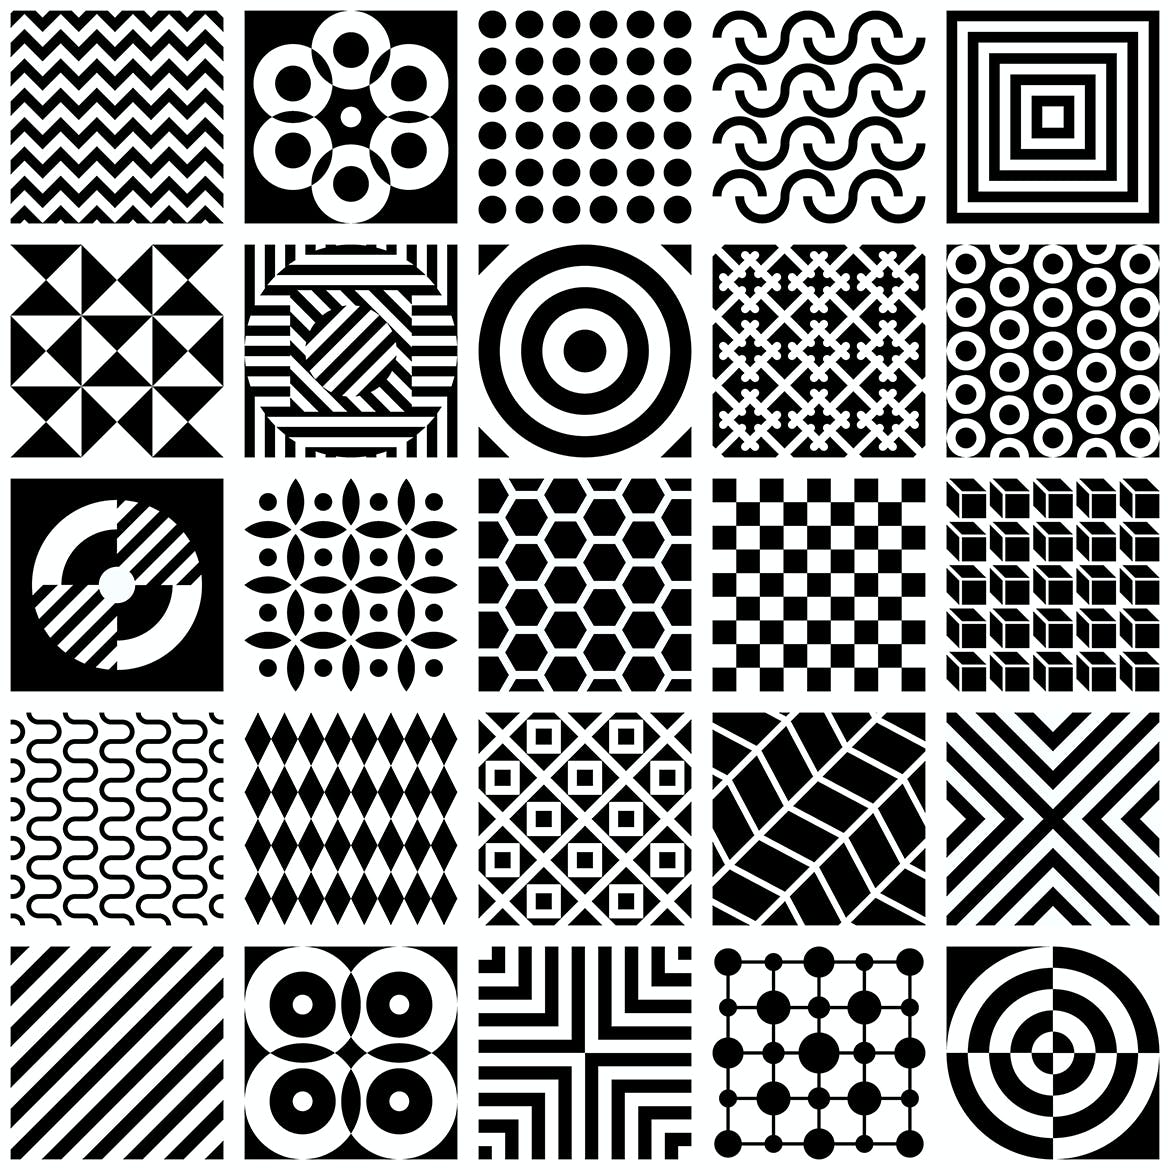 Black And White Geometric Patterns Vector Artwork By Danjazzia On